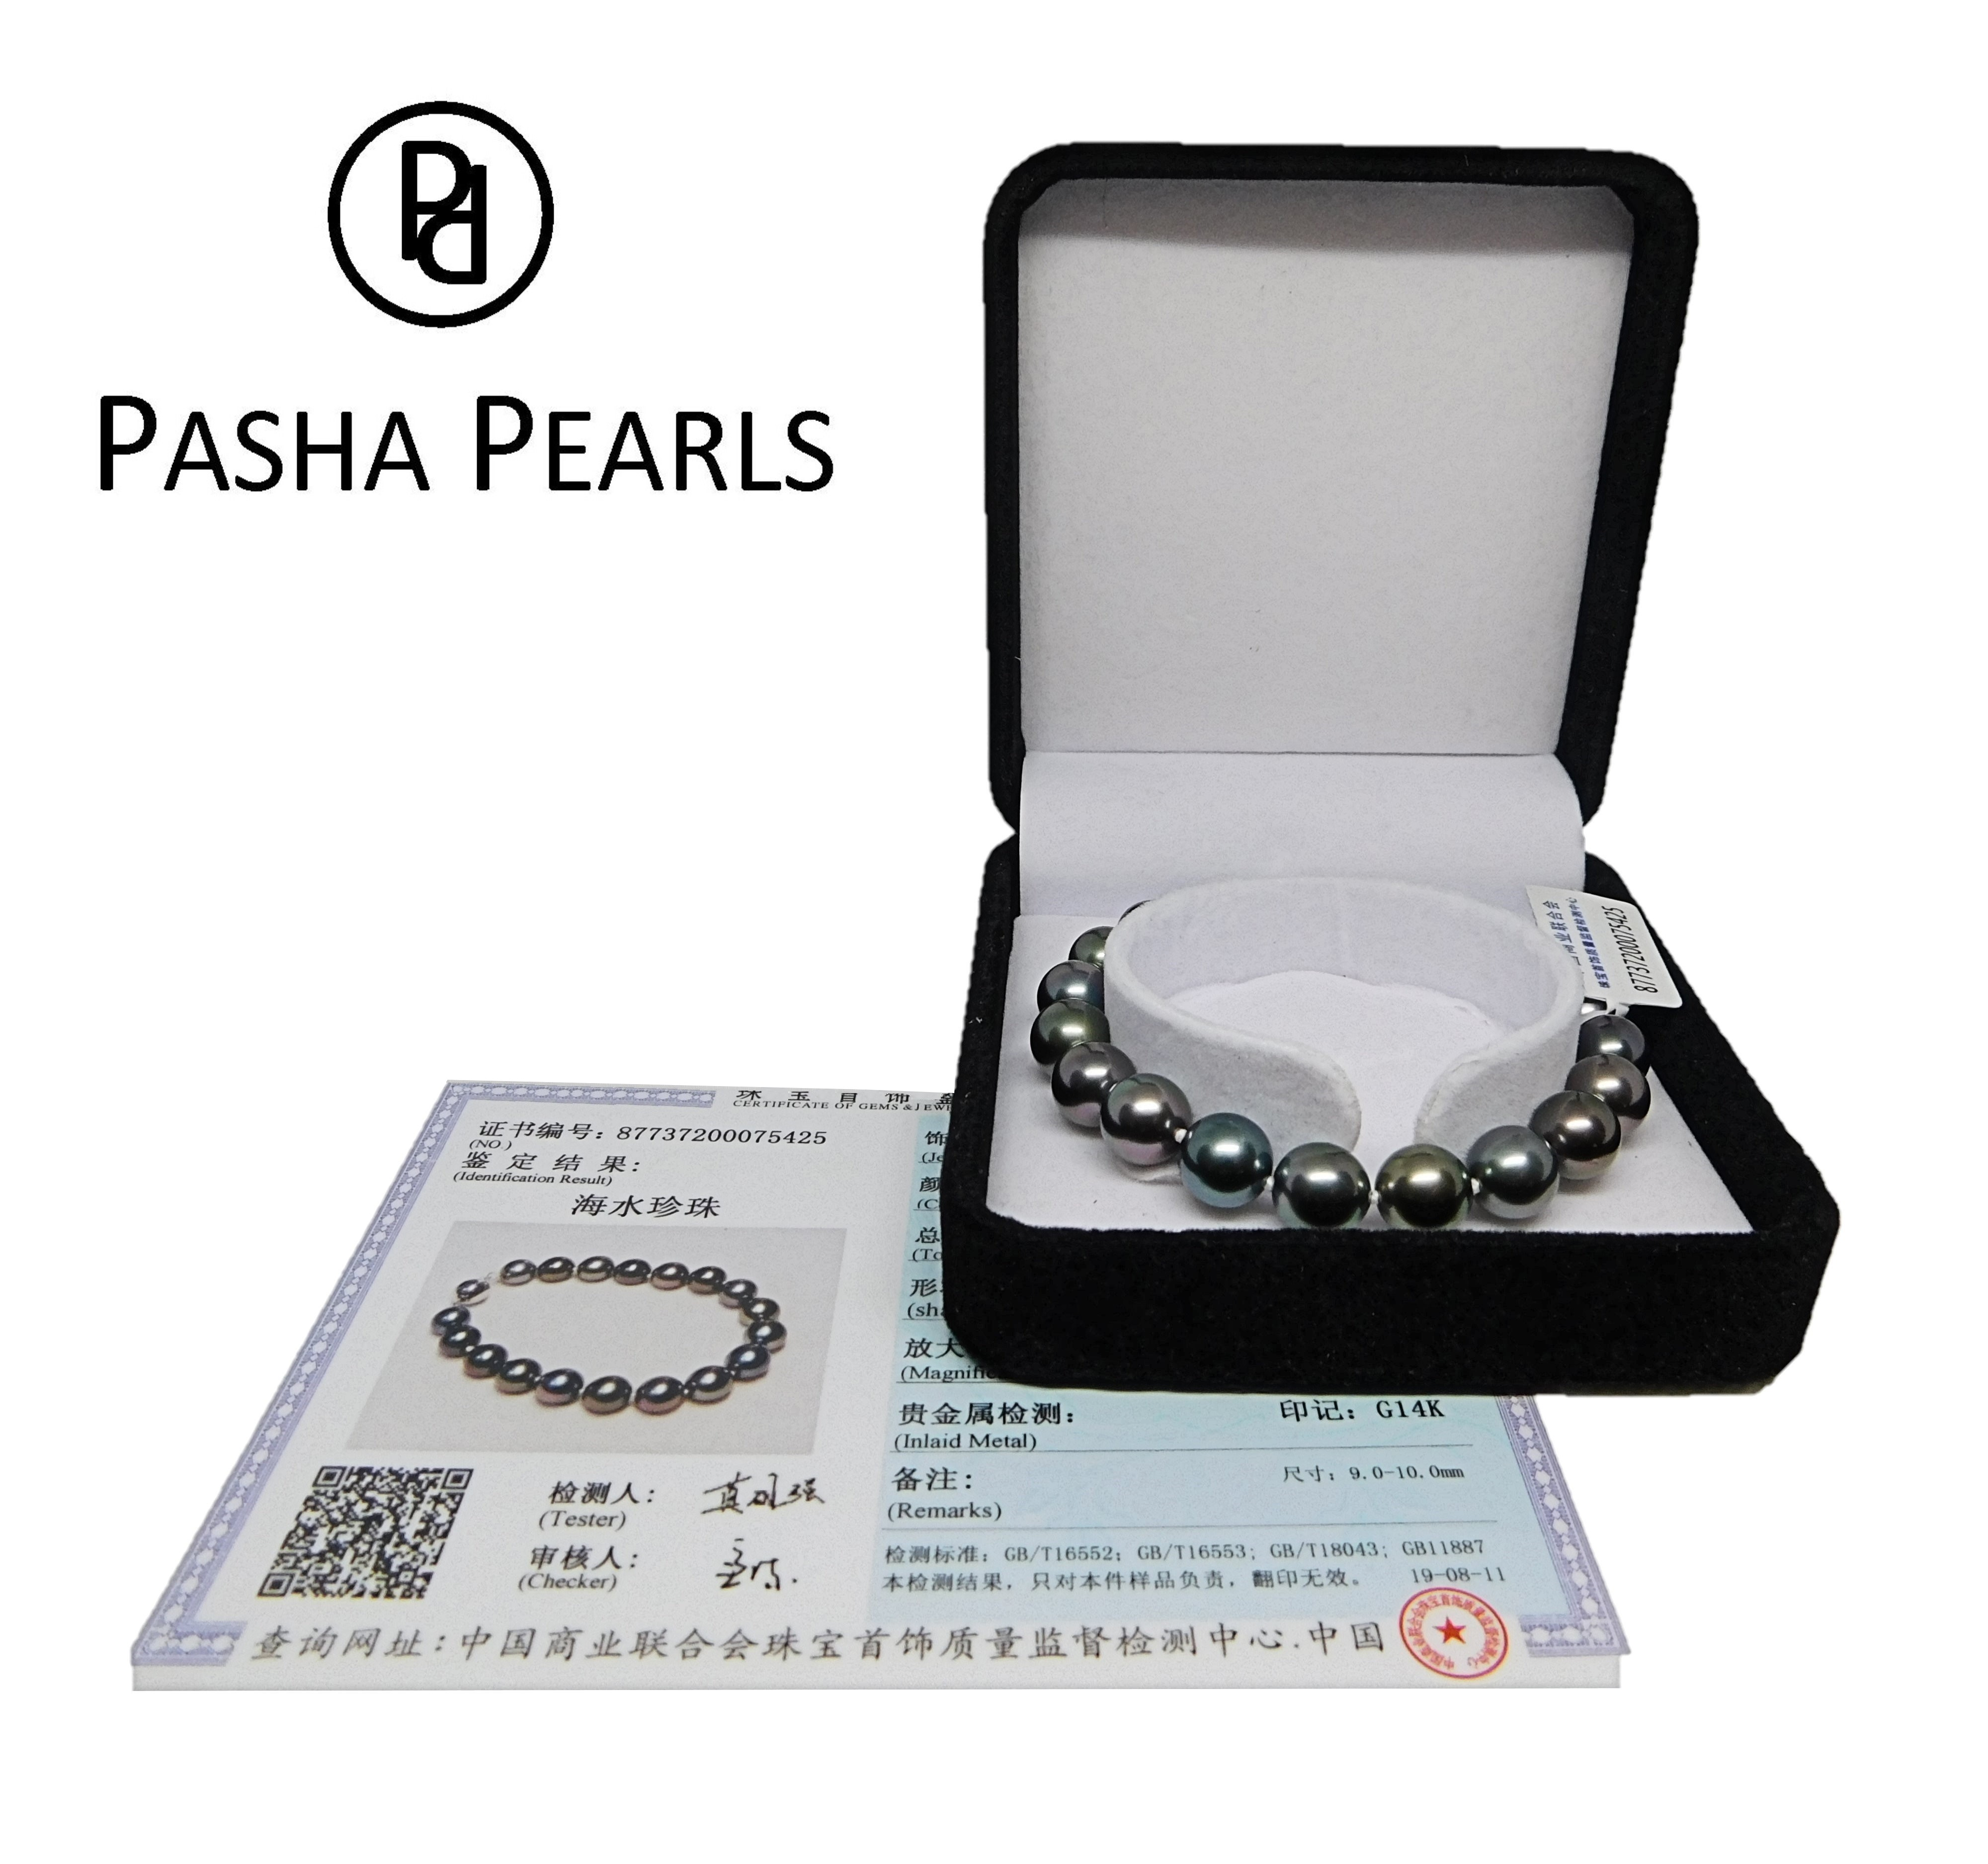 This elegant bracelet features 11.0-12.0mm Tahitian South Sea pearls, handpicked for their luminous luster